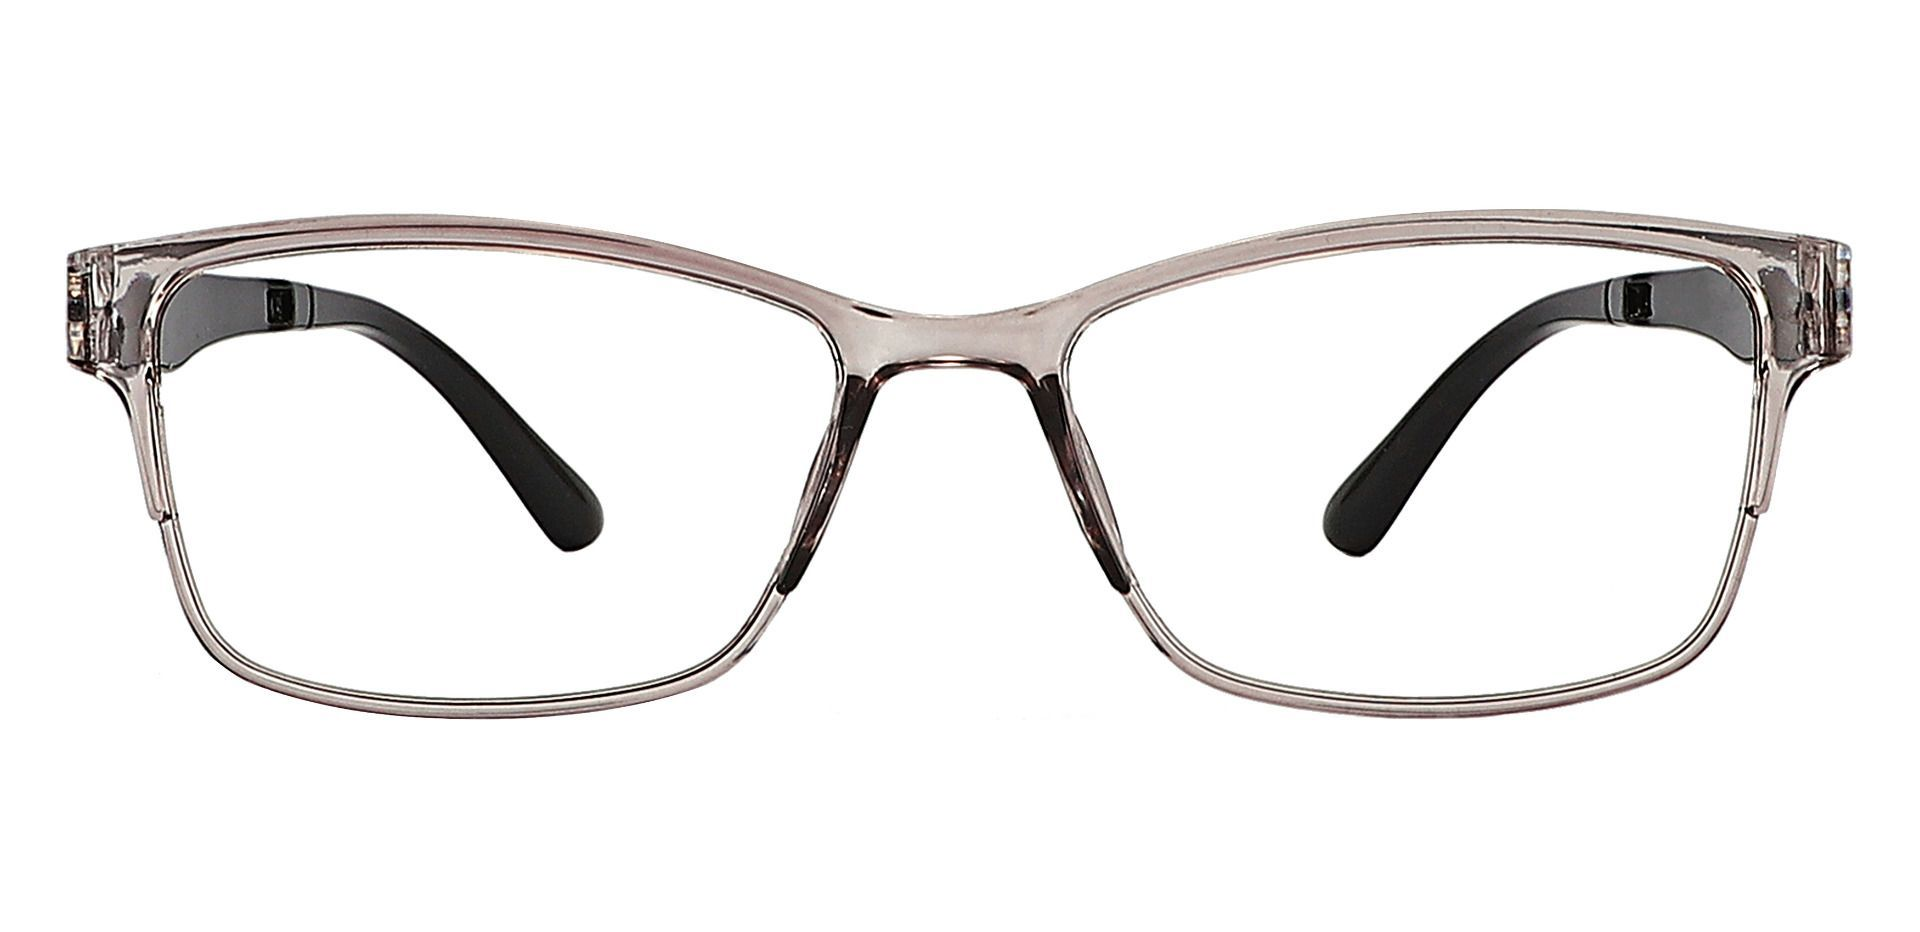 Cantwell Rectangle Lined Bifocal Glasses - Gray